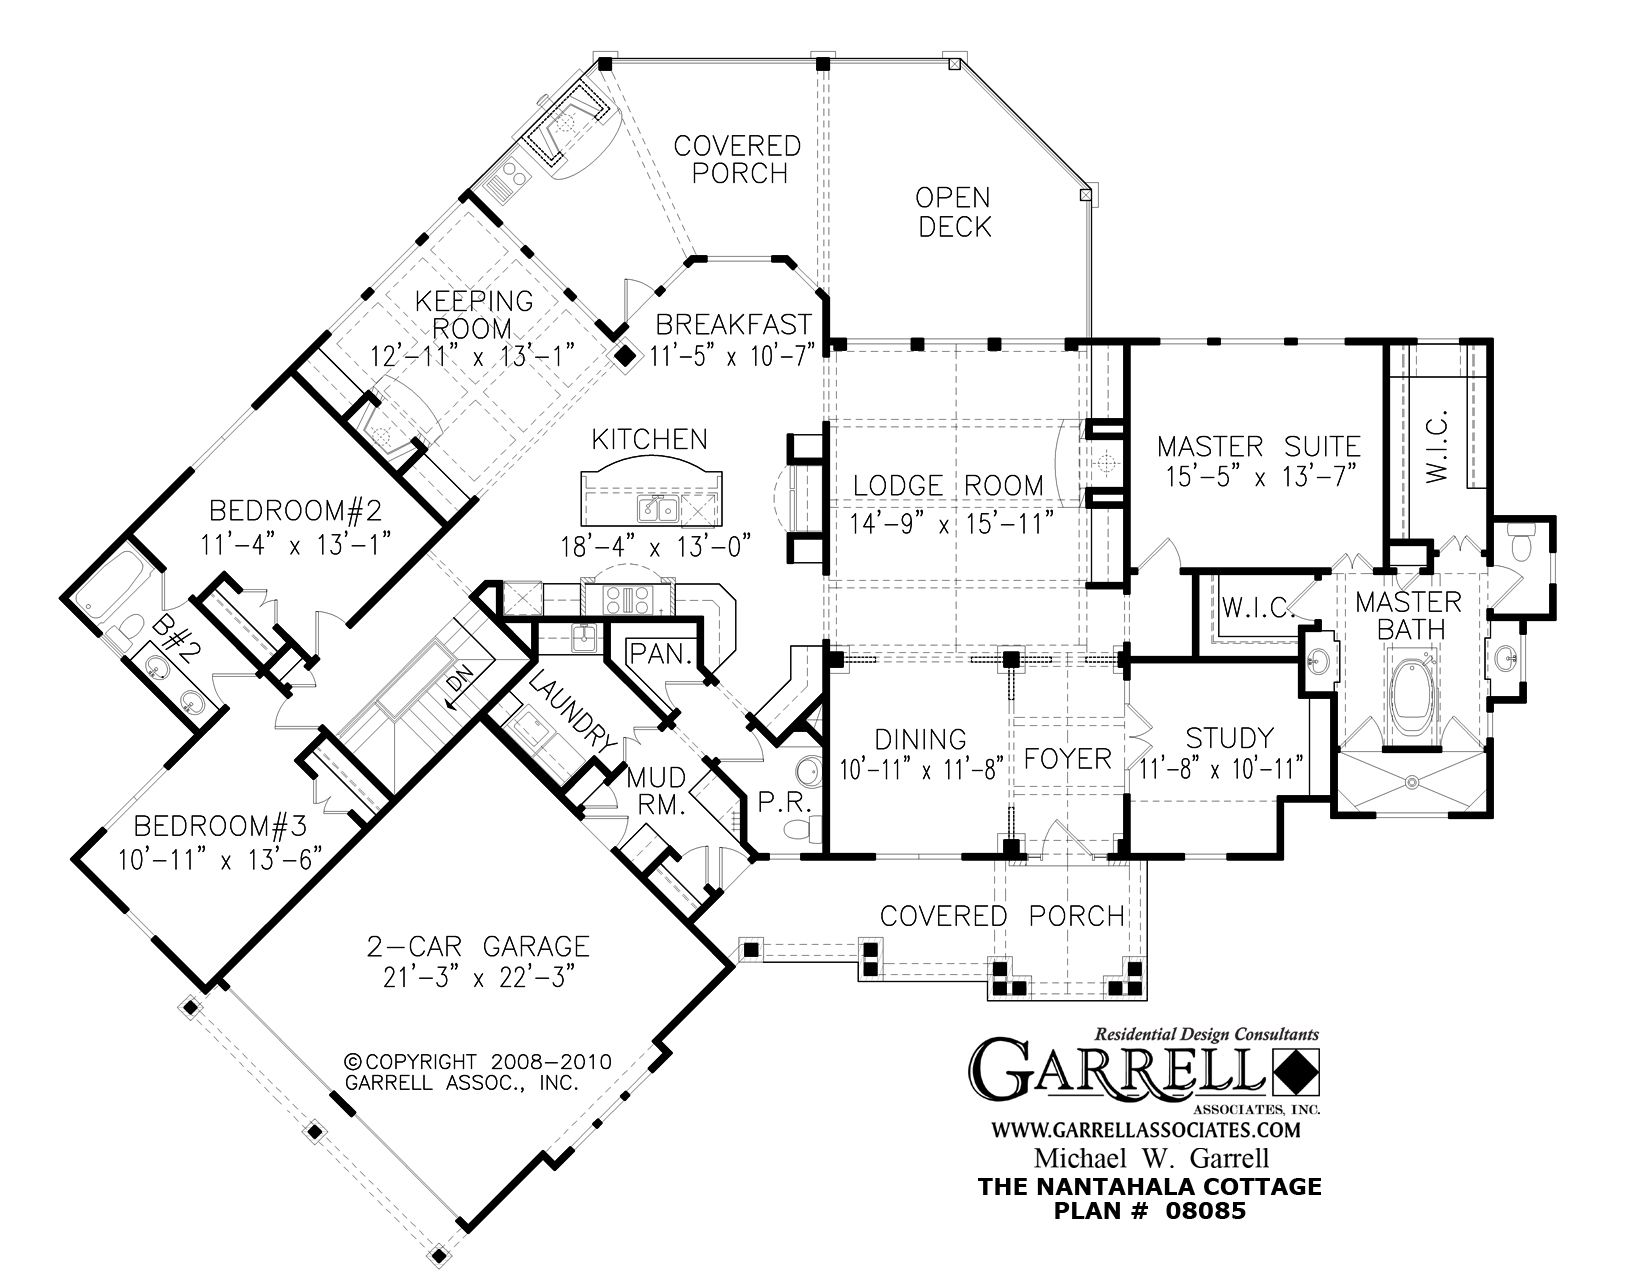 Nantahala House Plan 08085, 1st Floor Plan, 2,685 1st floor ... on severn floor plan, shelby floor plan, dallas floor plan, horse shoe floor plan, cherokee floor plan, canton floor plan, asheville floor plan, cleveland floor plan, bakersville floor plan, charlotte floor plan, ridgecrest floor plan, whittier floor plan, arden floor plan, norwood floor plan, sapphire floor plan, greensboro floor plan, vicksburg floor plan, holly springs floor plan, oasis of the seas floor plan, new bern floor plan,